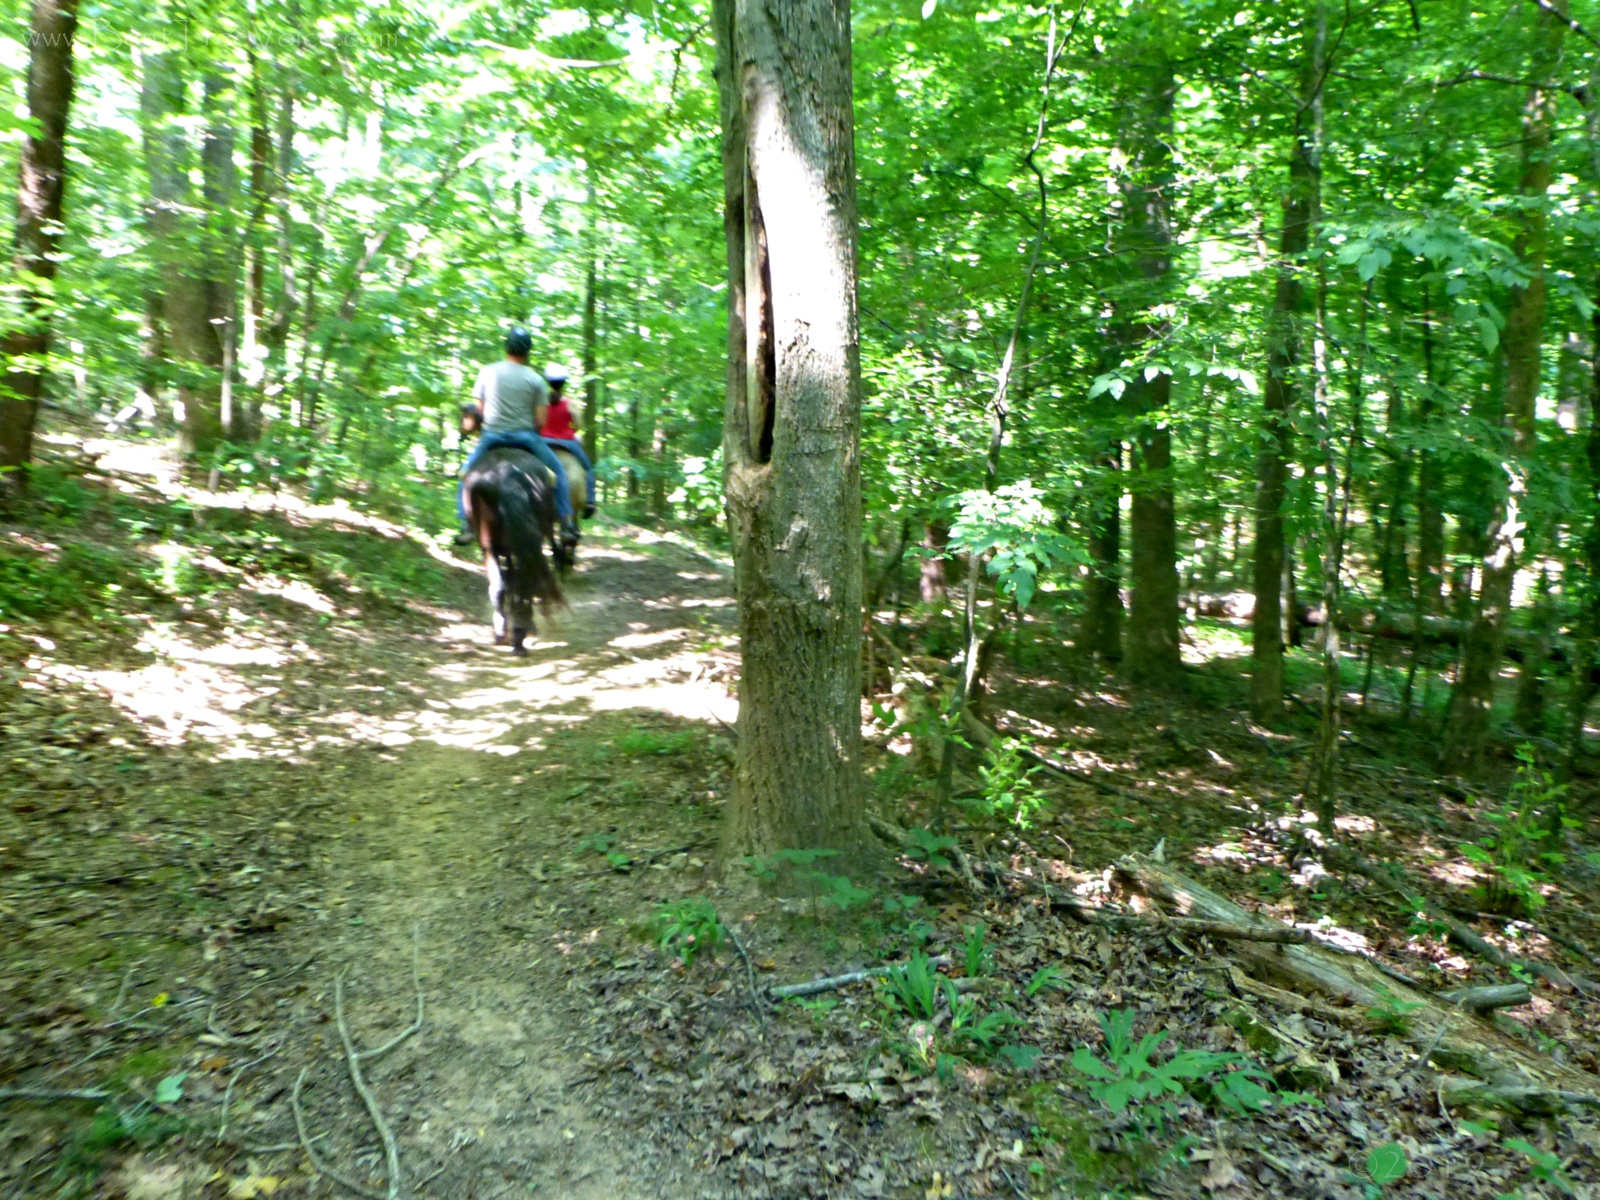 May 26, 2019 - riding the trails in Bent Tree